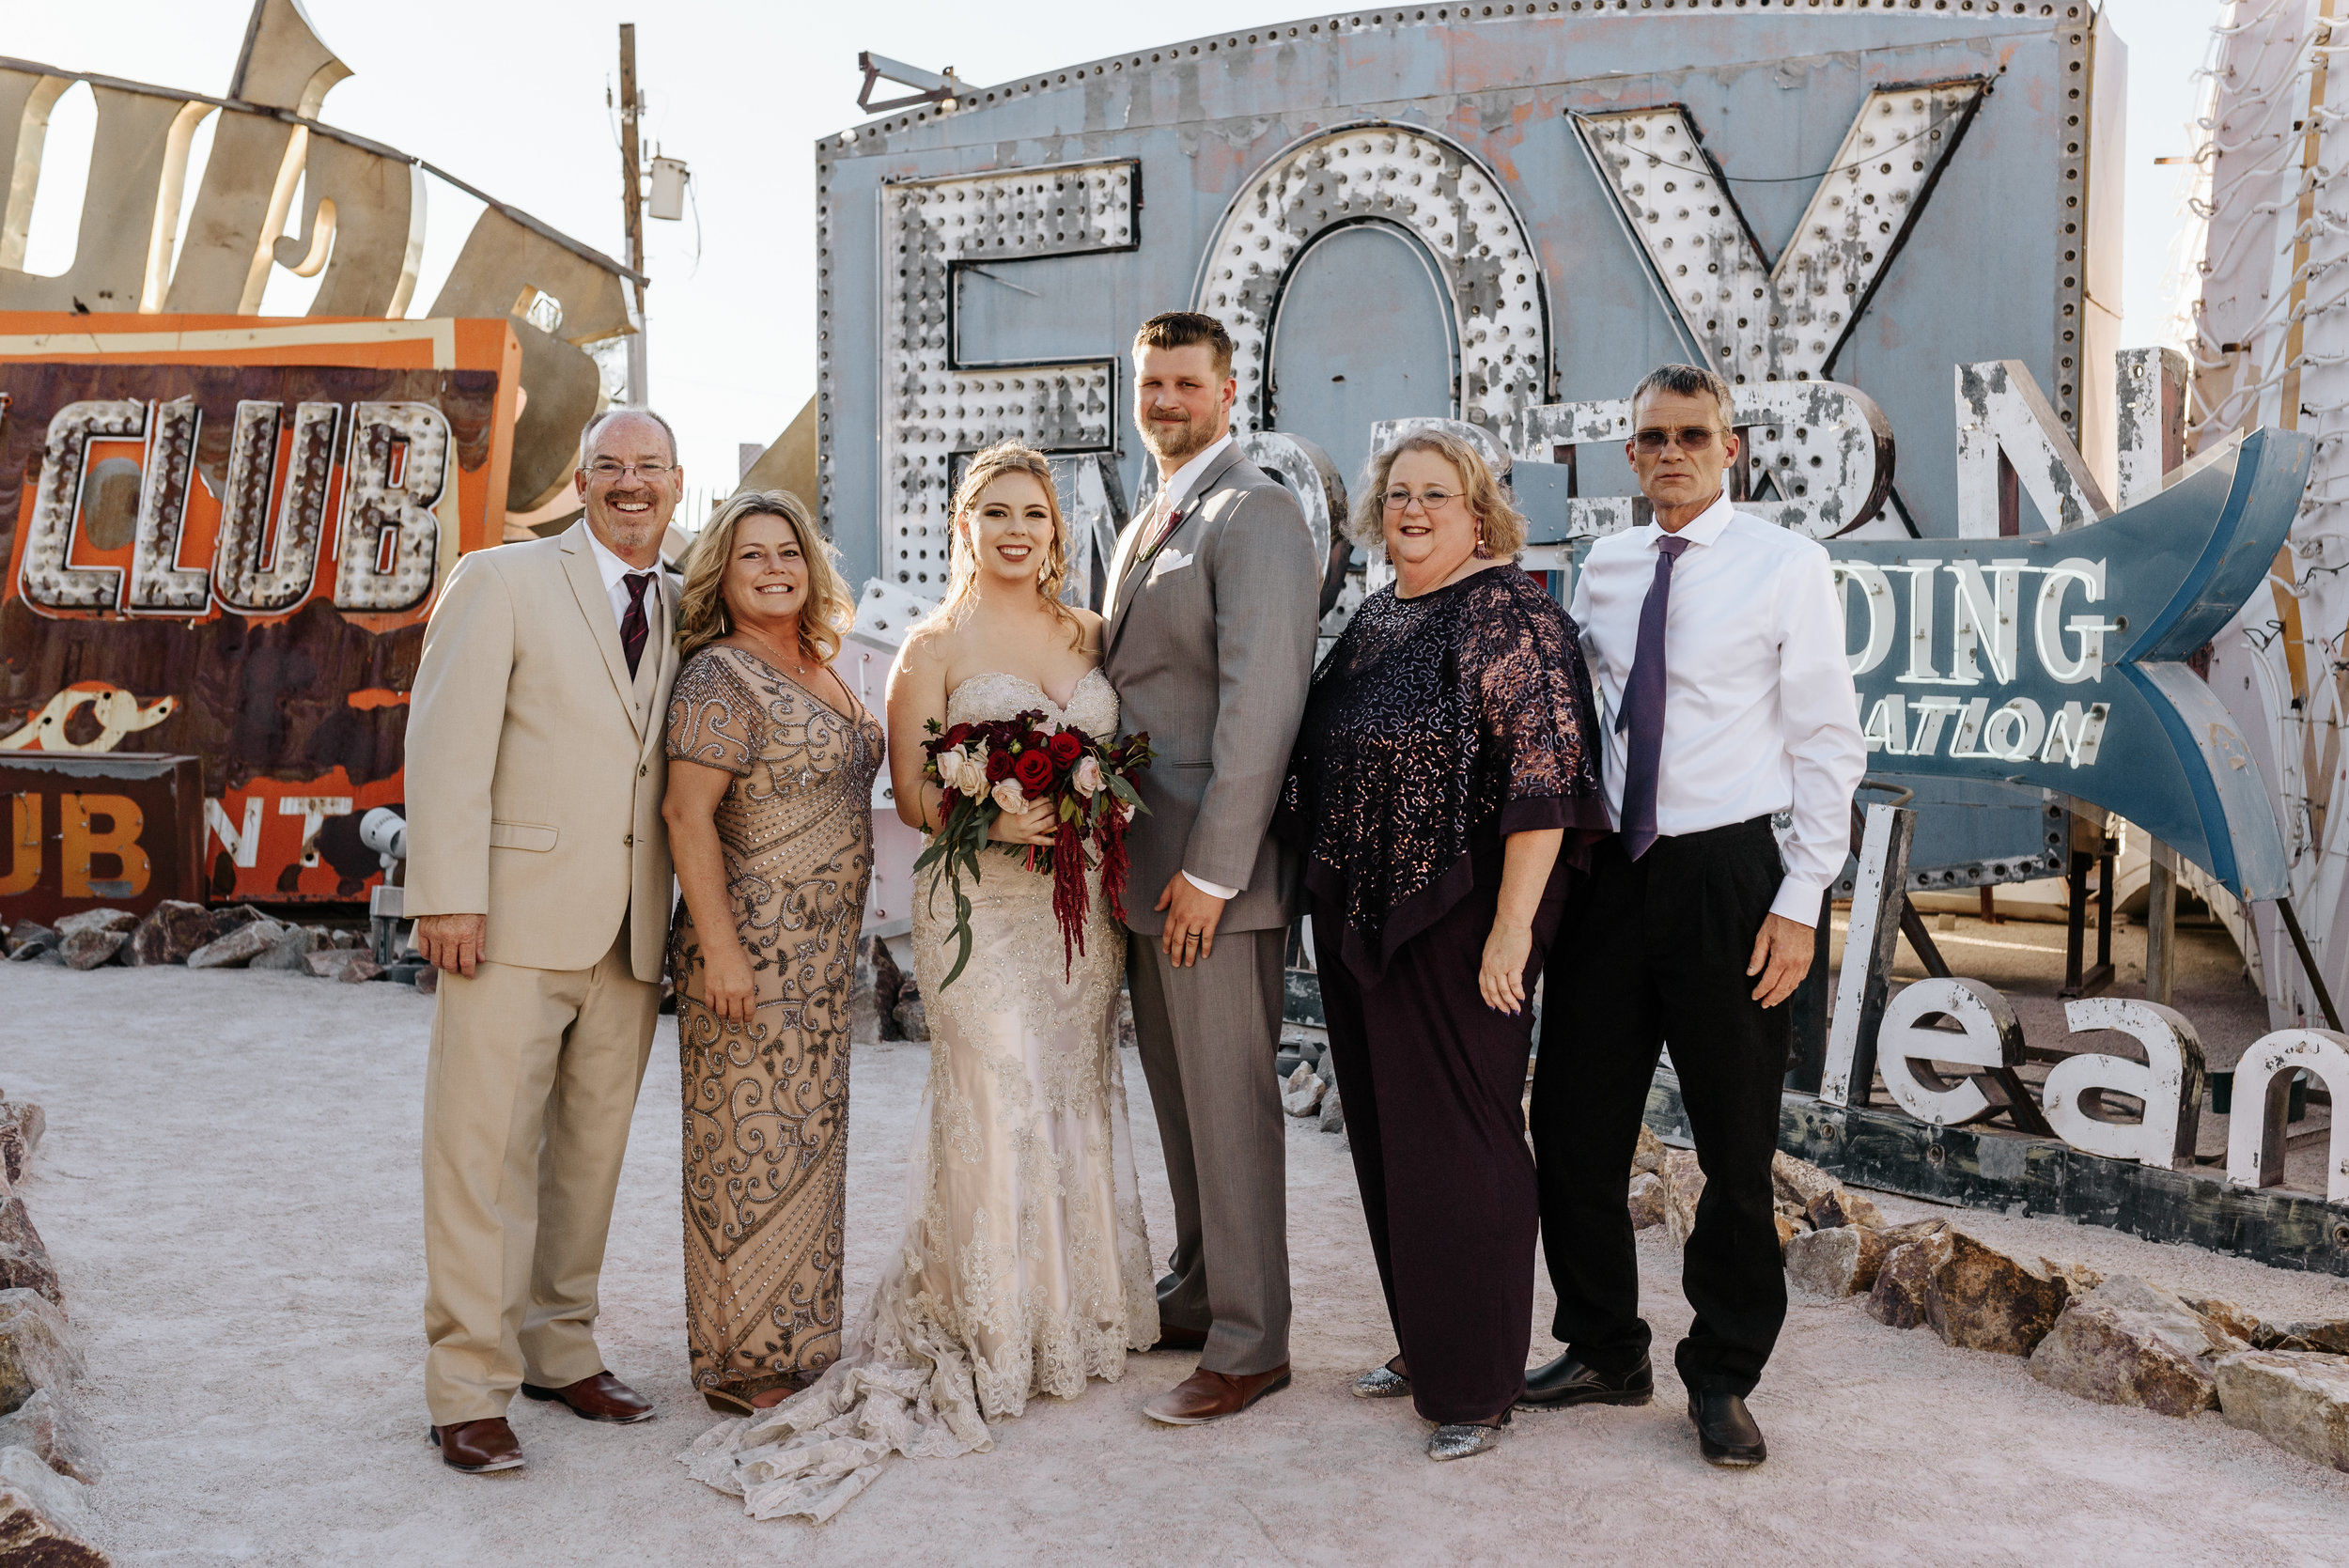 Neon-Museum-Wedding-Las-Vegas-Nevada-Golden-Nugget-Photography-by-V-Ally-and-Dan-2986.jpg